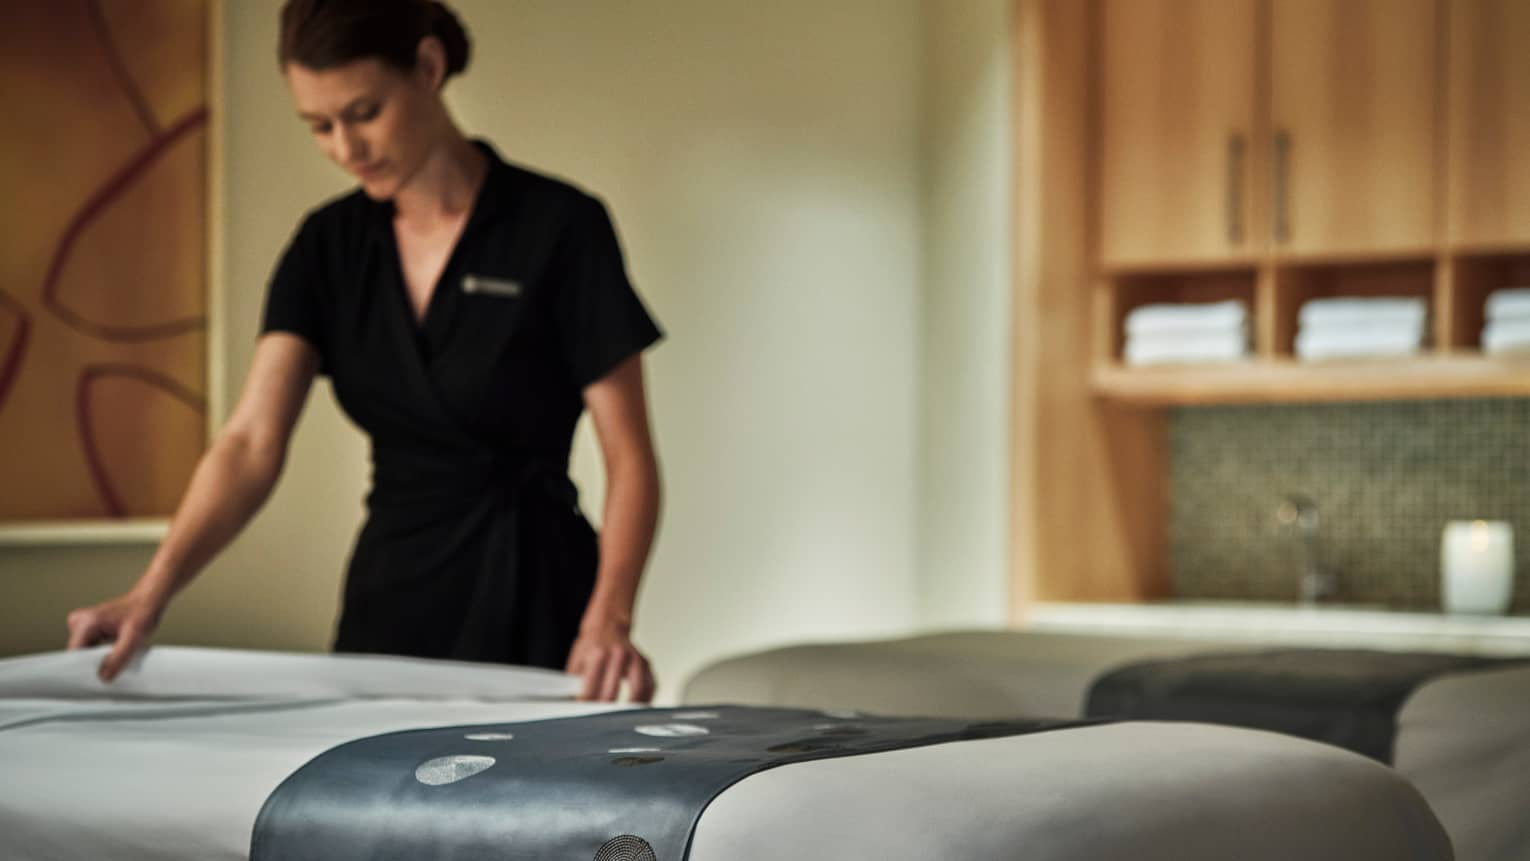 Spa attendant in black dress folds down white sheet on massage table